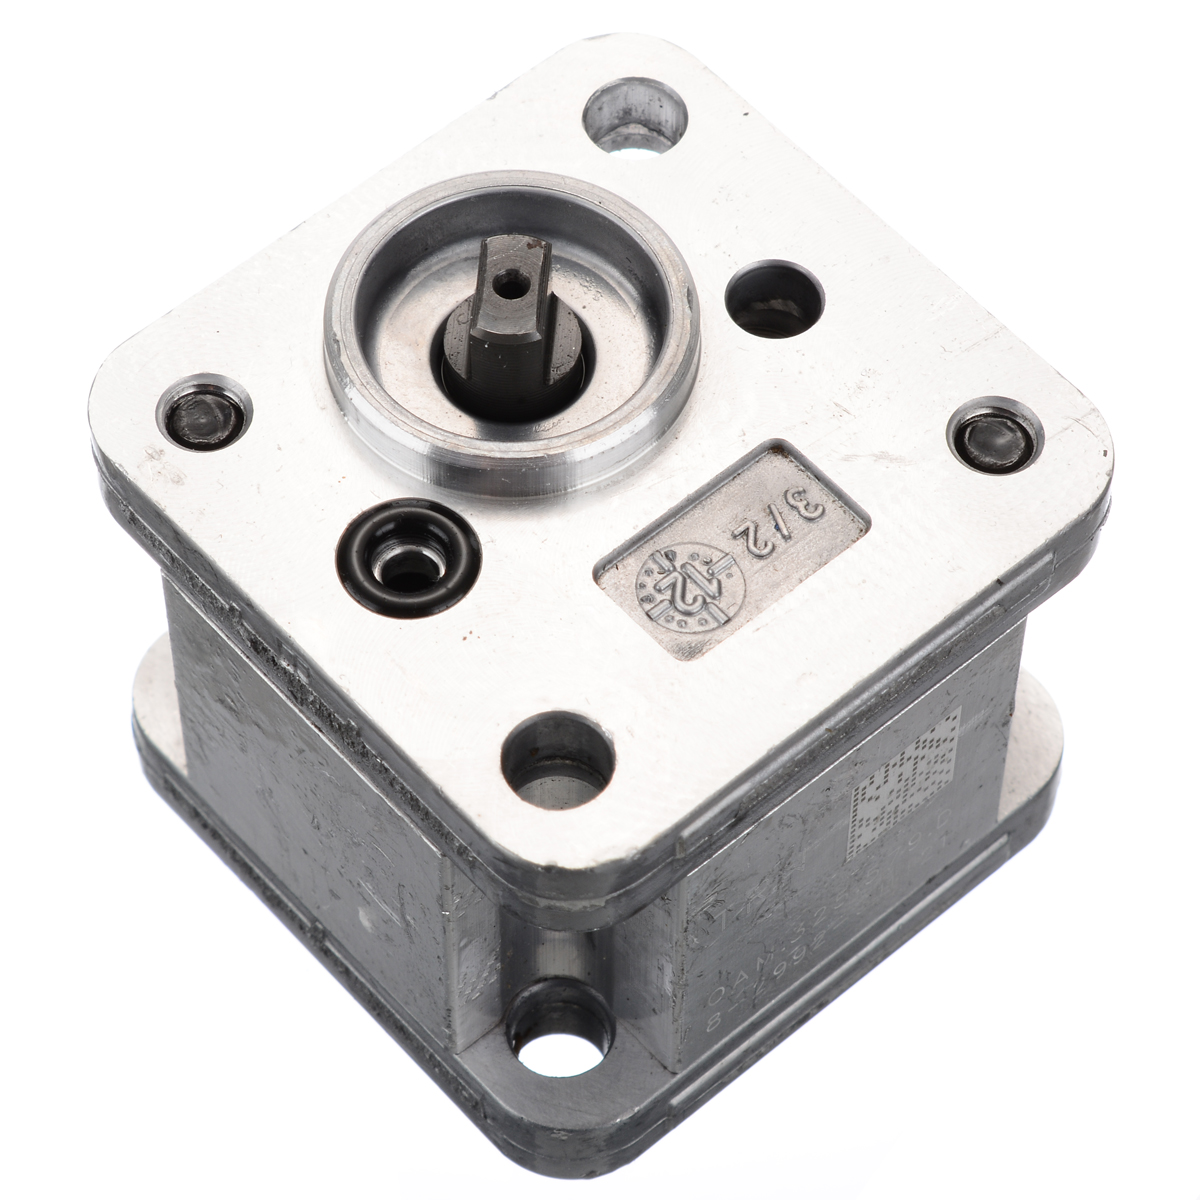 New Hydraulic Gear Pump Metal Gear Pump Hydraulic Model Excavating Machinery For Home DIY Tools Durable